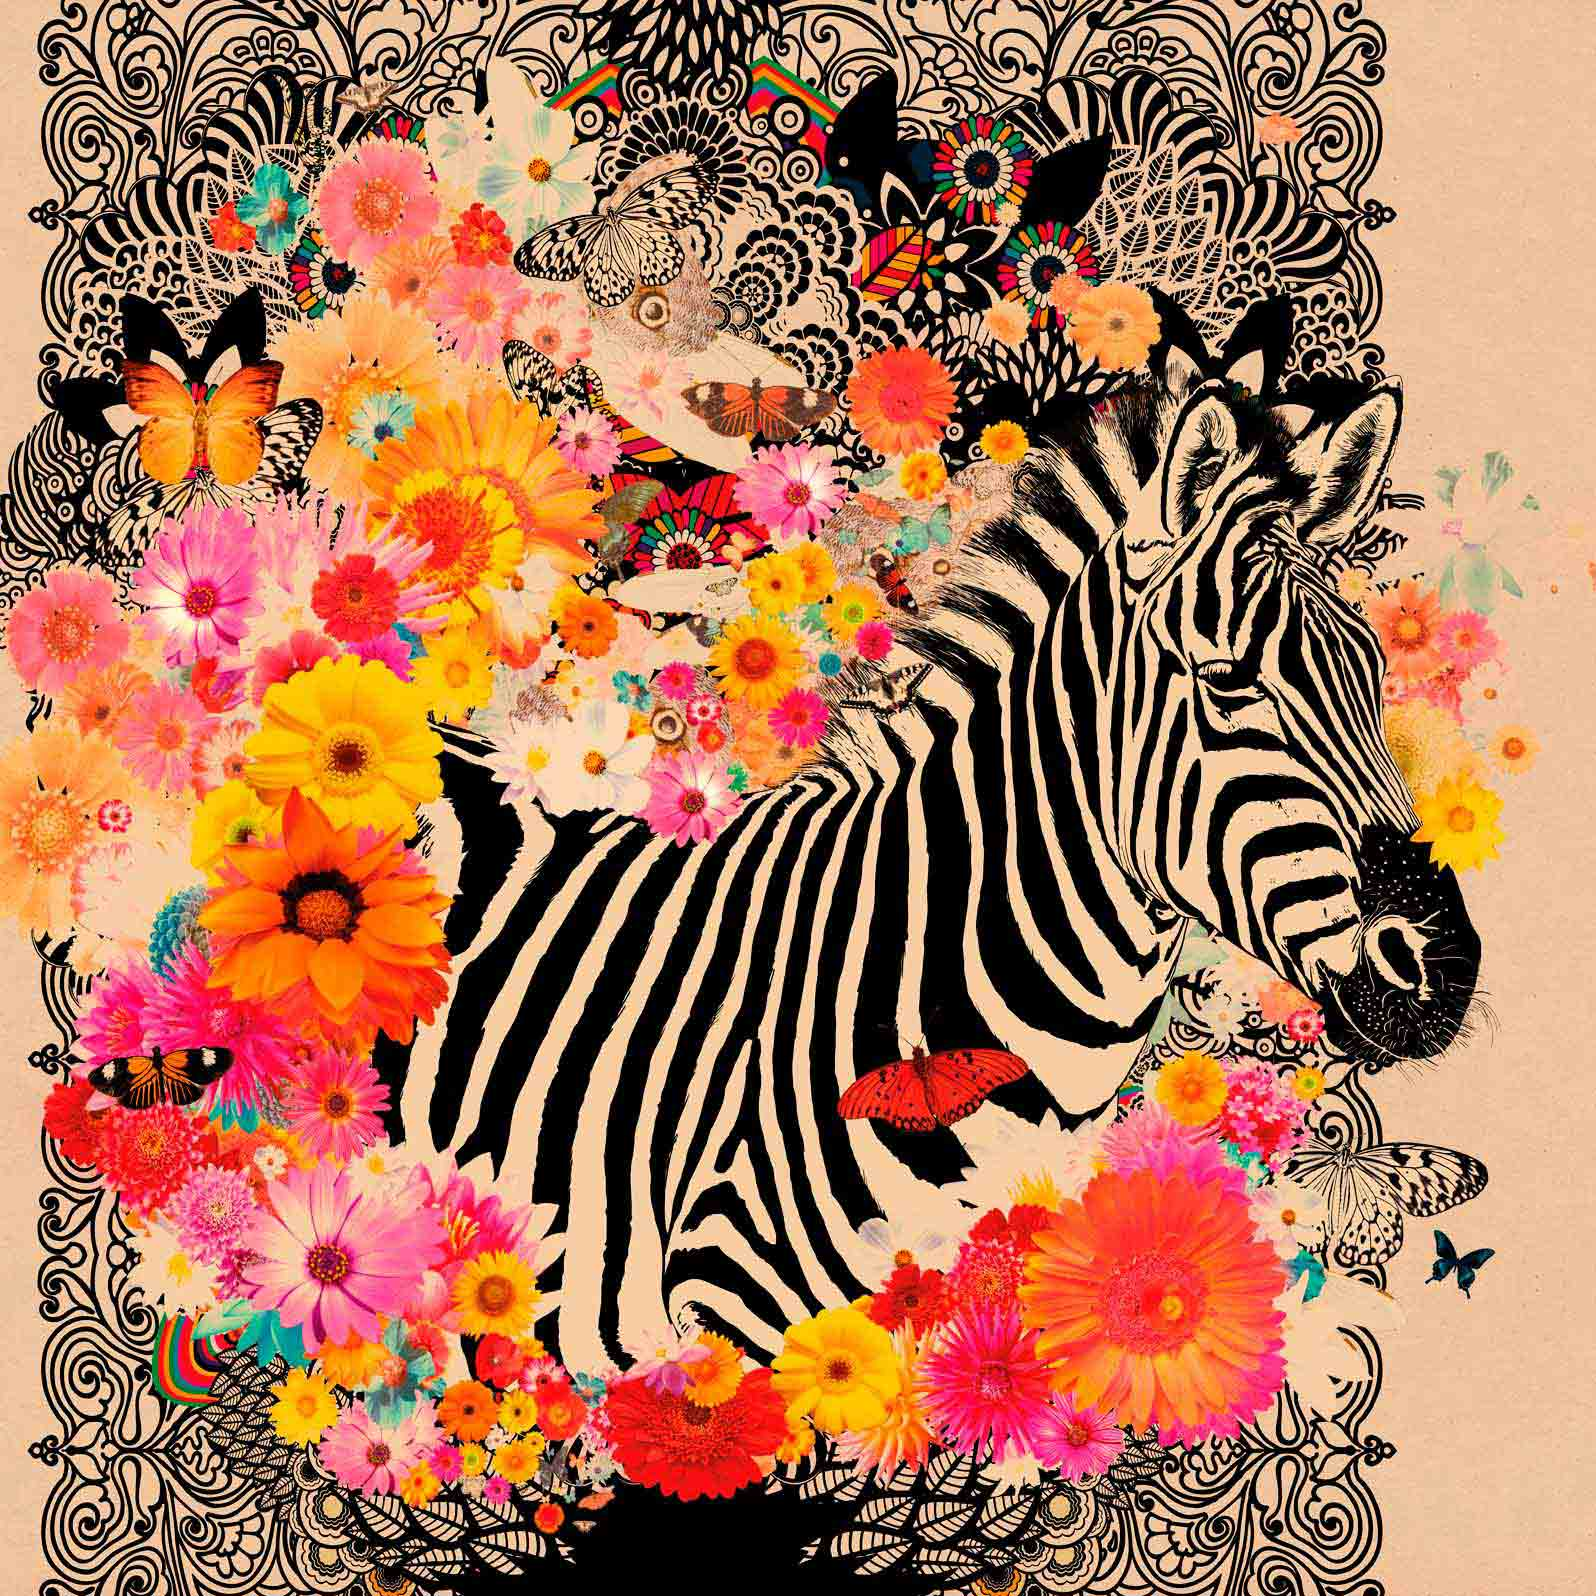 Anca Stefanescu | Contemporary Painter | Happy Zebra, Digital Art